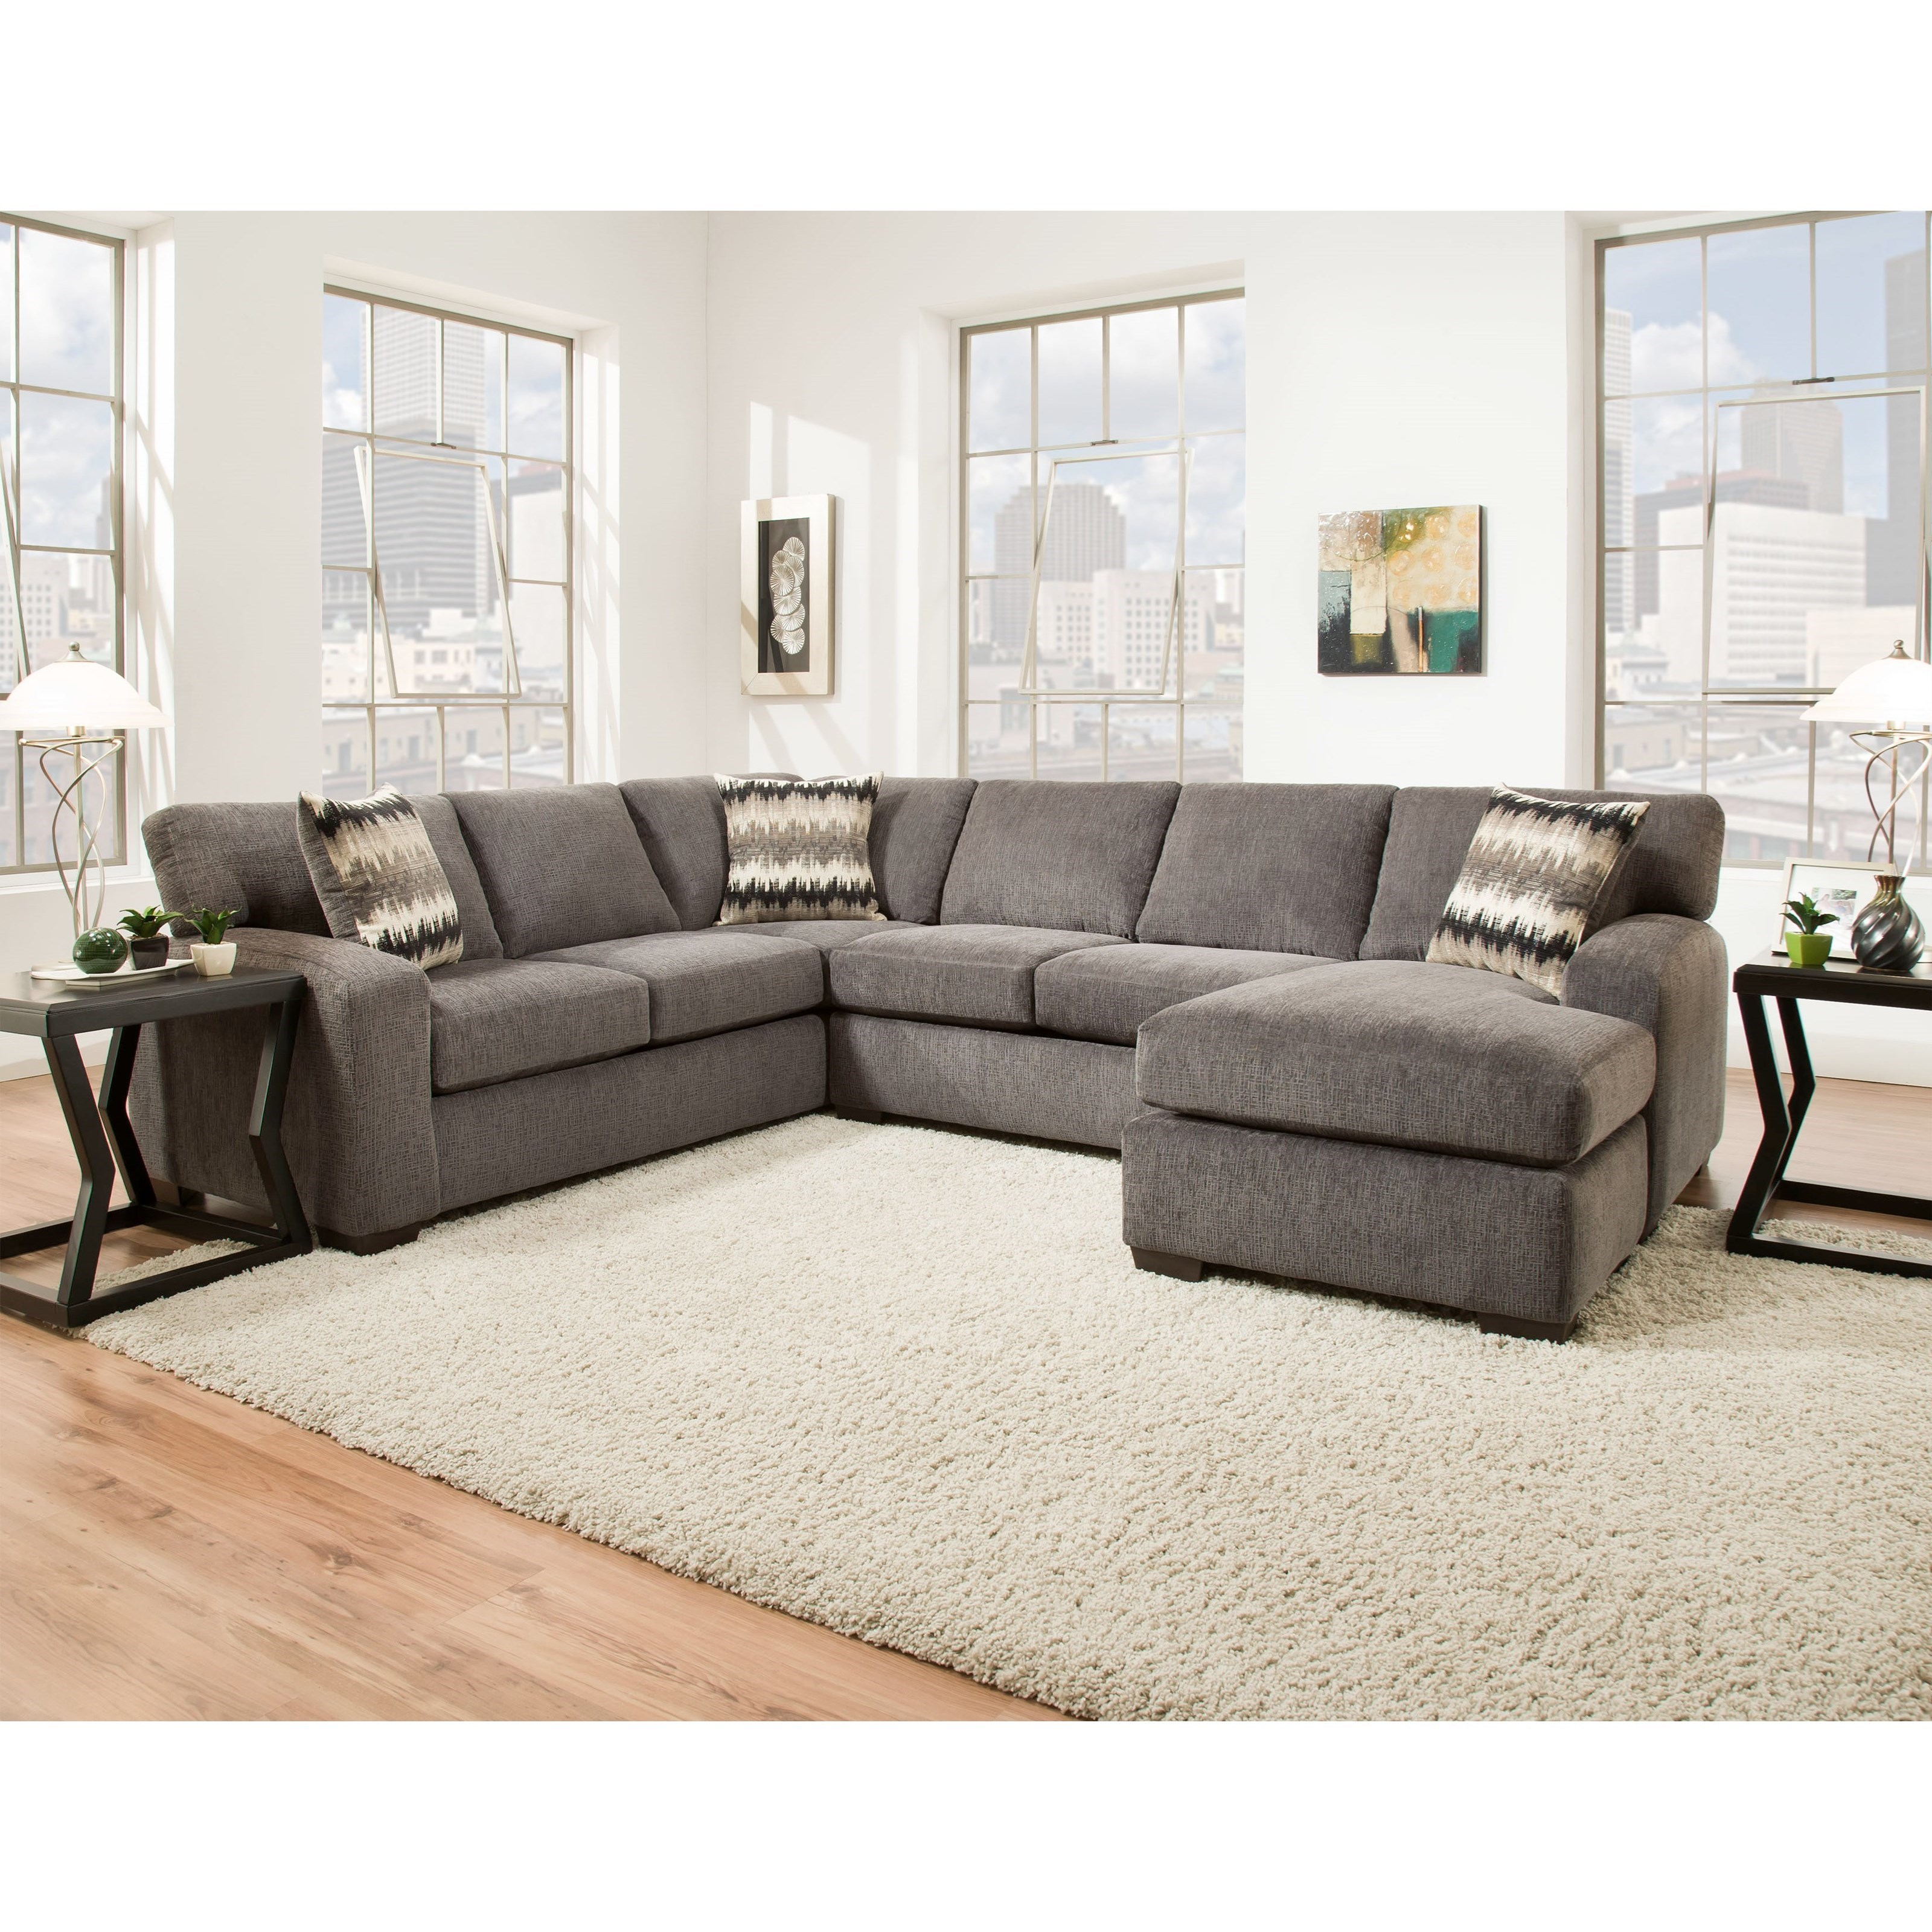 American Furniture 5250Sectional Sofa   Seats 5